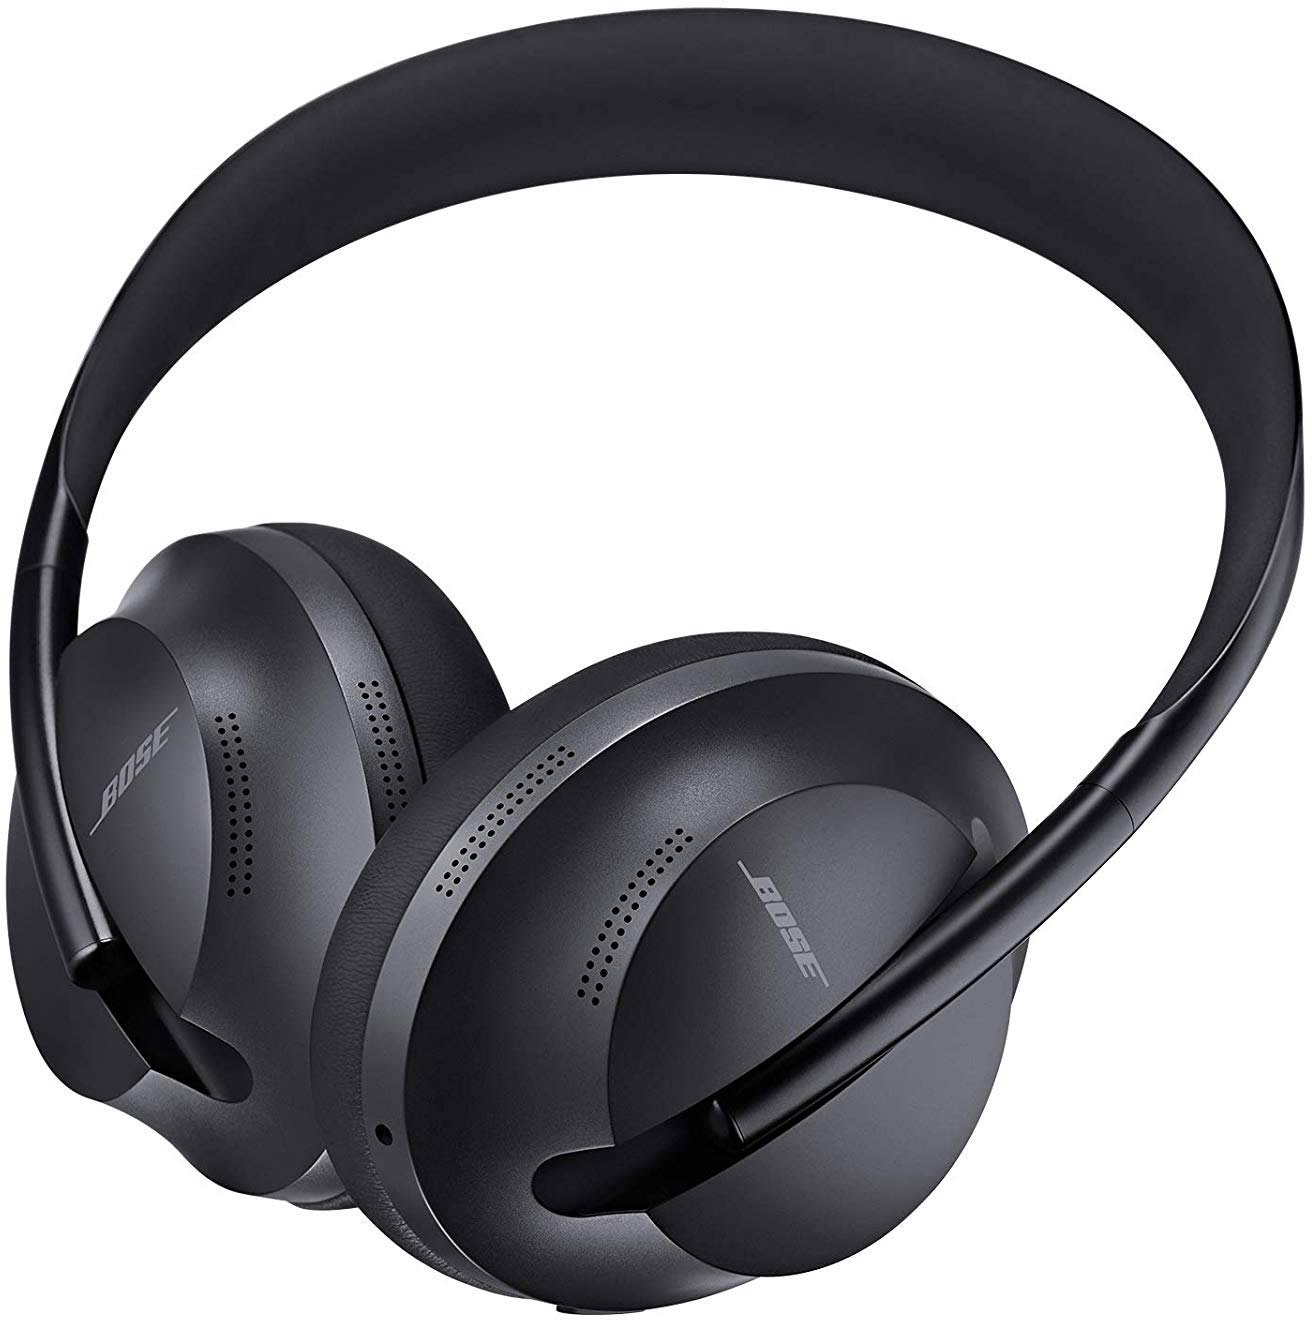 Sony WH1000XM3 vs  Bose Noise Cancelling Headphones 700: Which ones